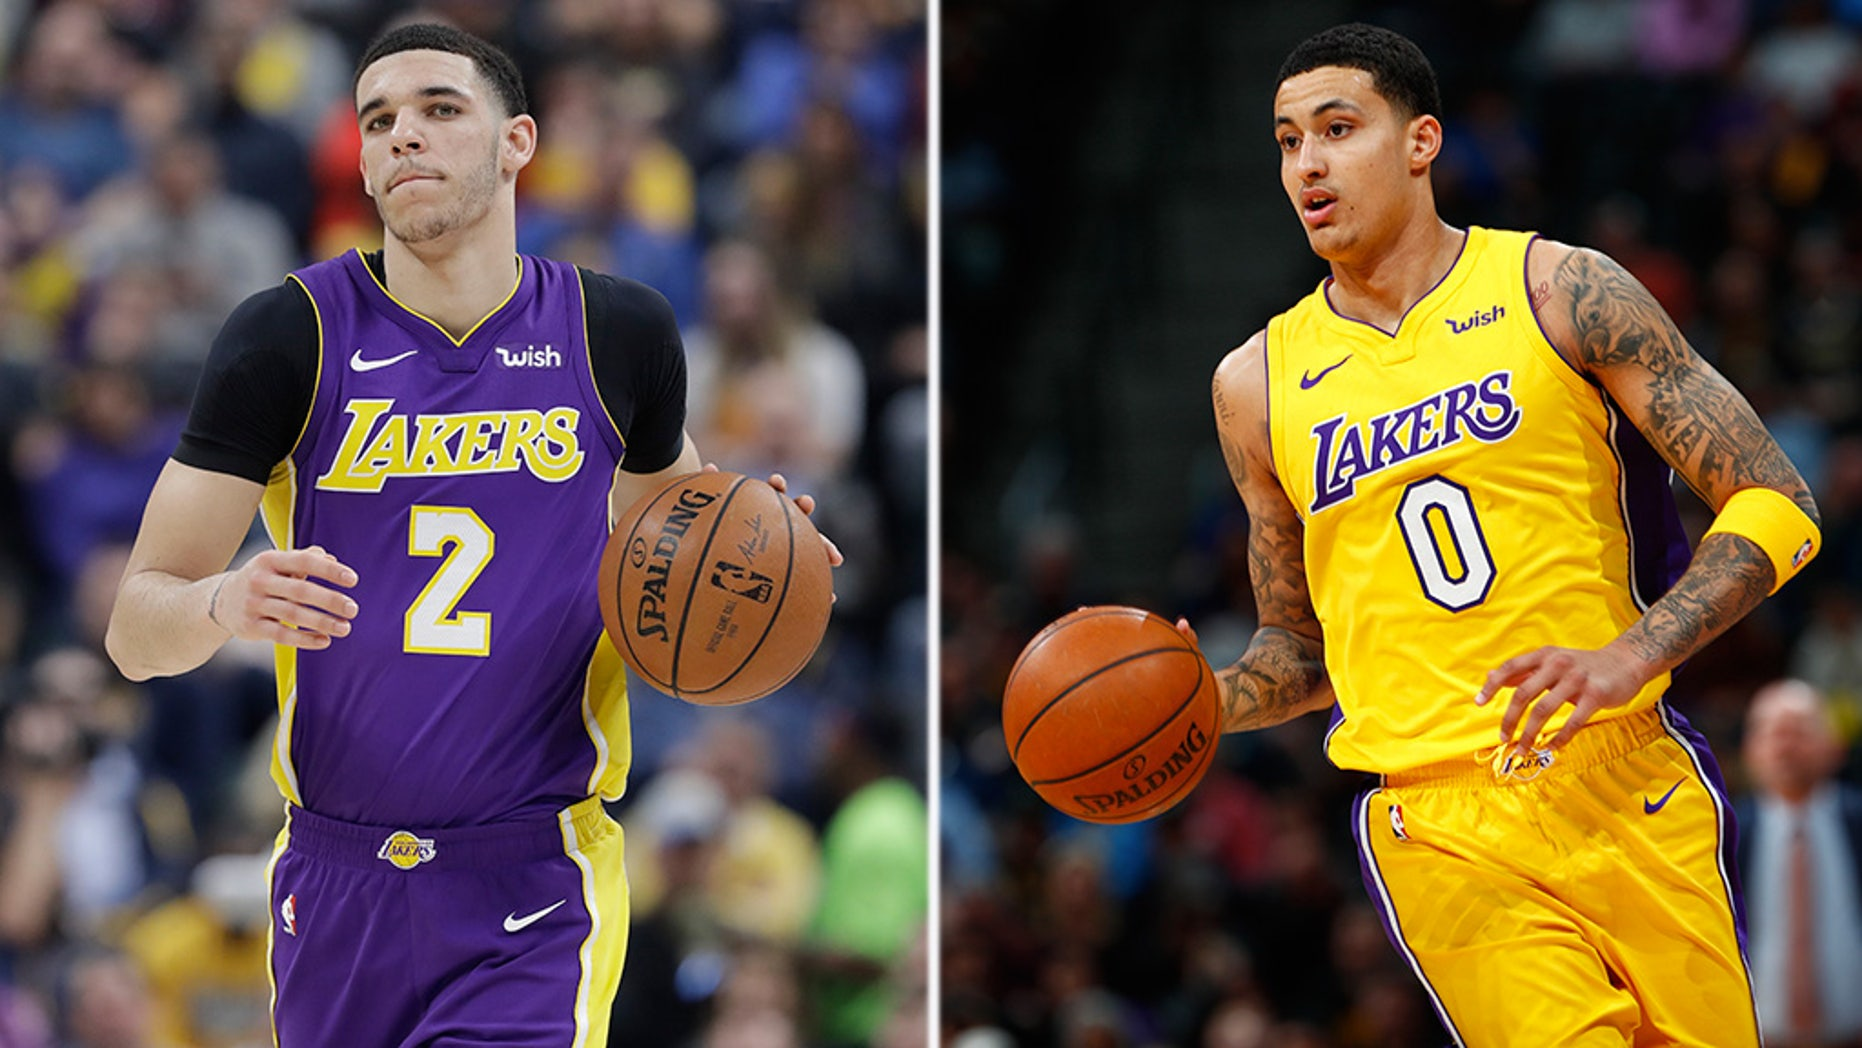 Lonzo Ball, left, and Kyle Kuzma would often roast each other on social media.